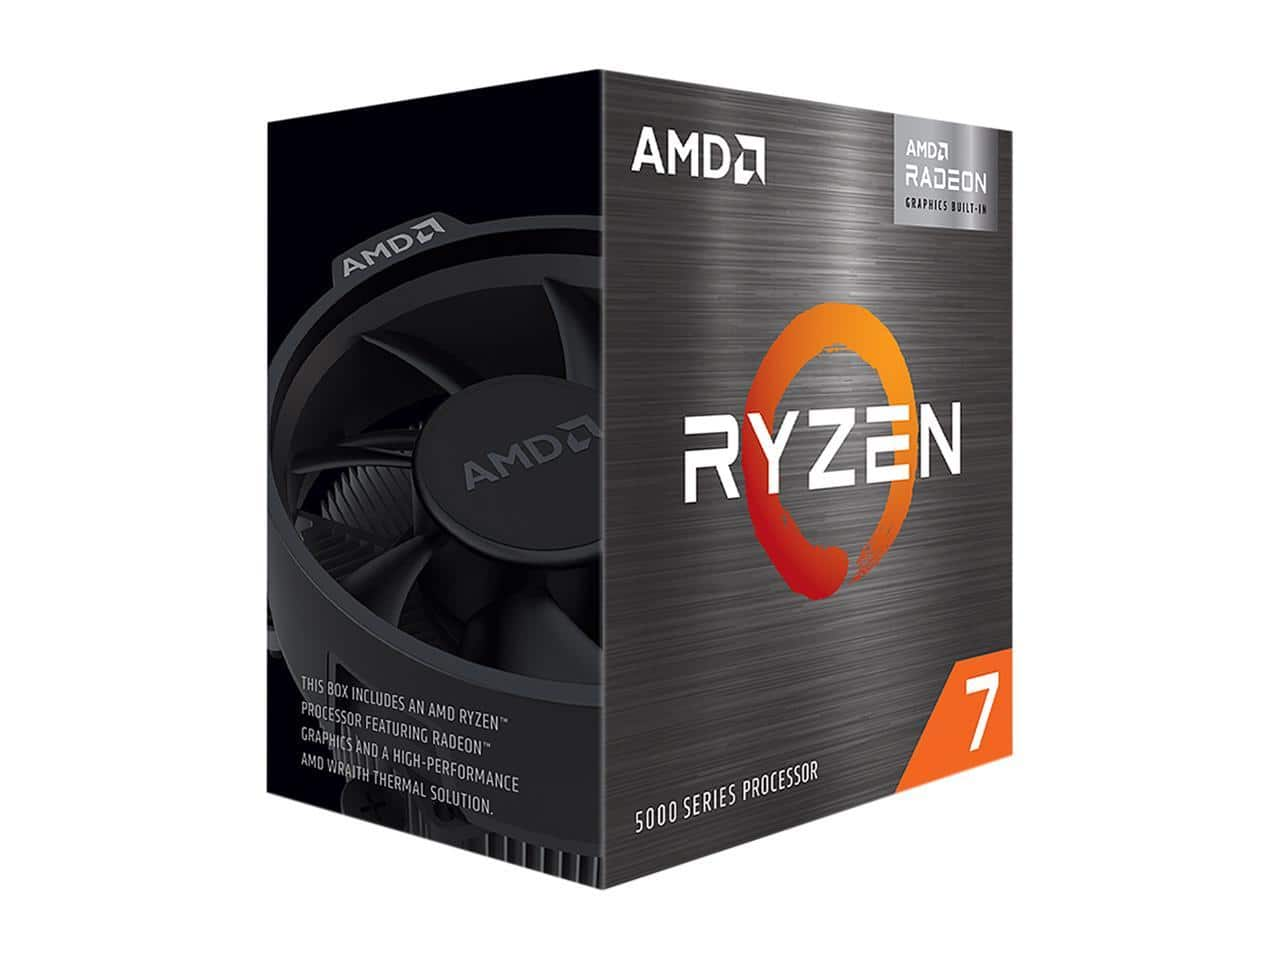 AMD Ryzen 7 5700G now available on Newegg.com - $364 w/shipping